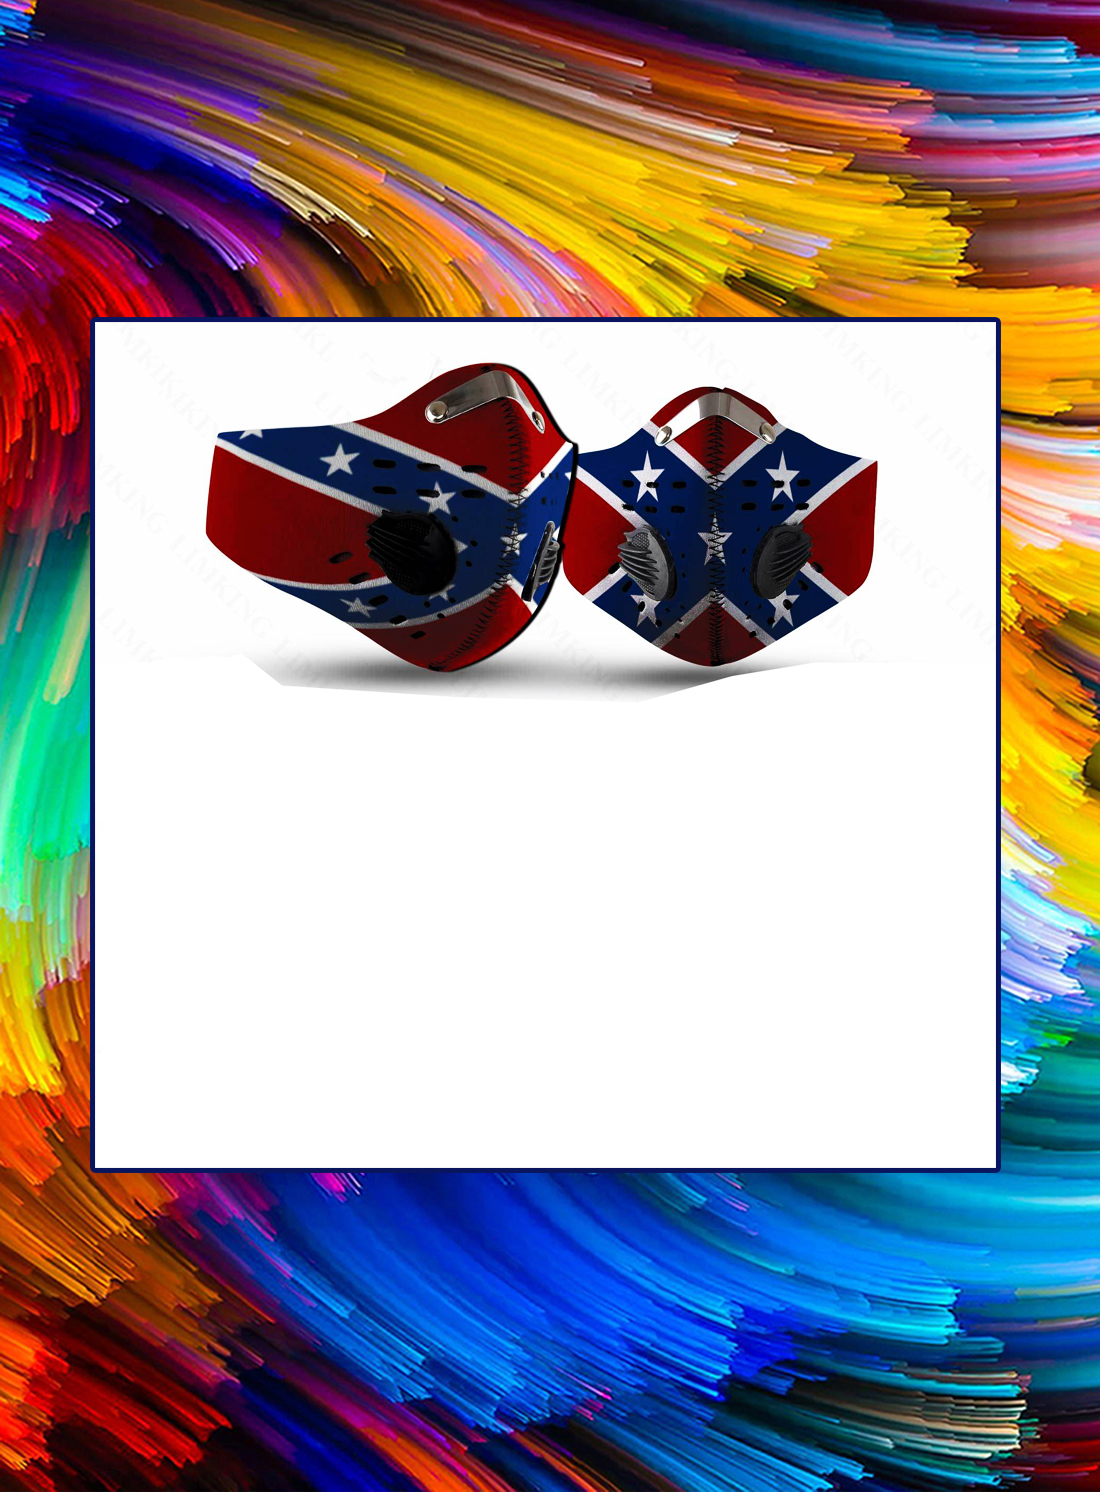 Confederate flag filter face mask - Picture 1